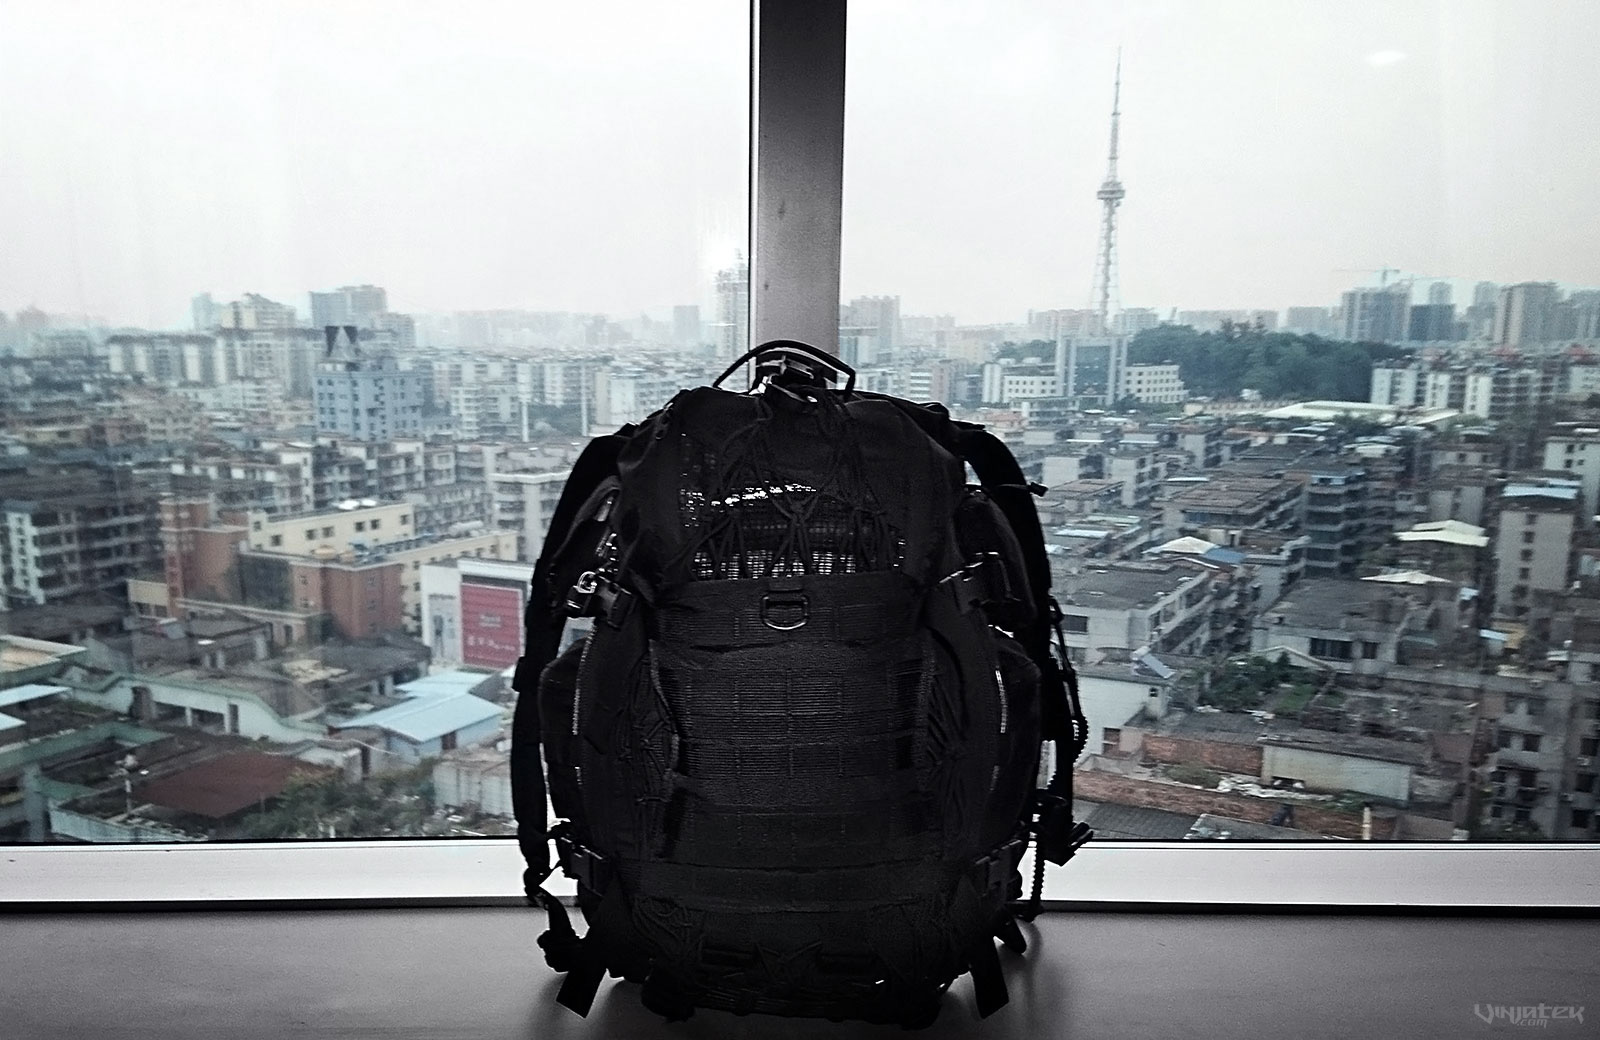 Vinjatek Go-Bag in Guangzhou, China ///